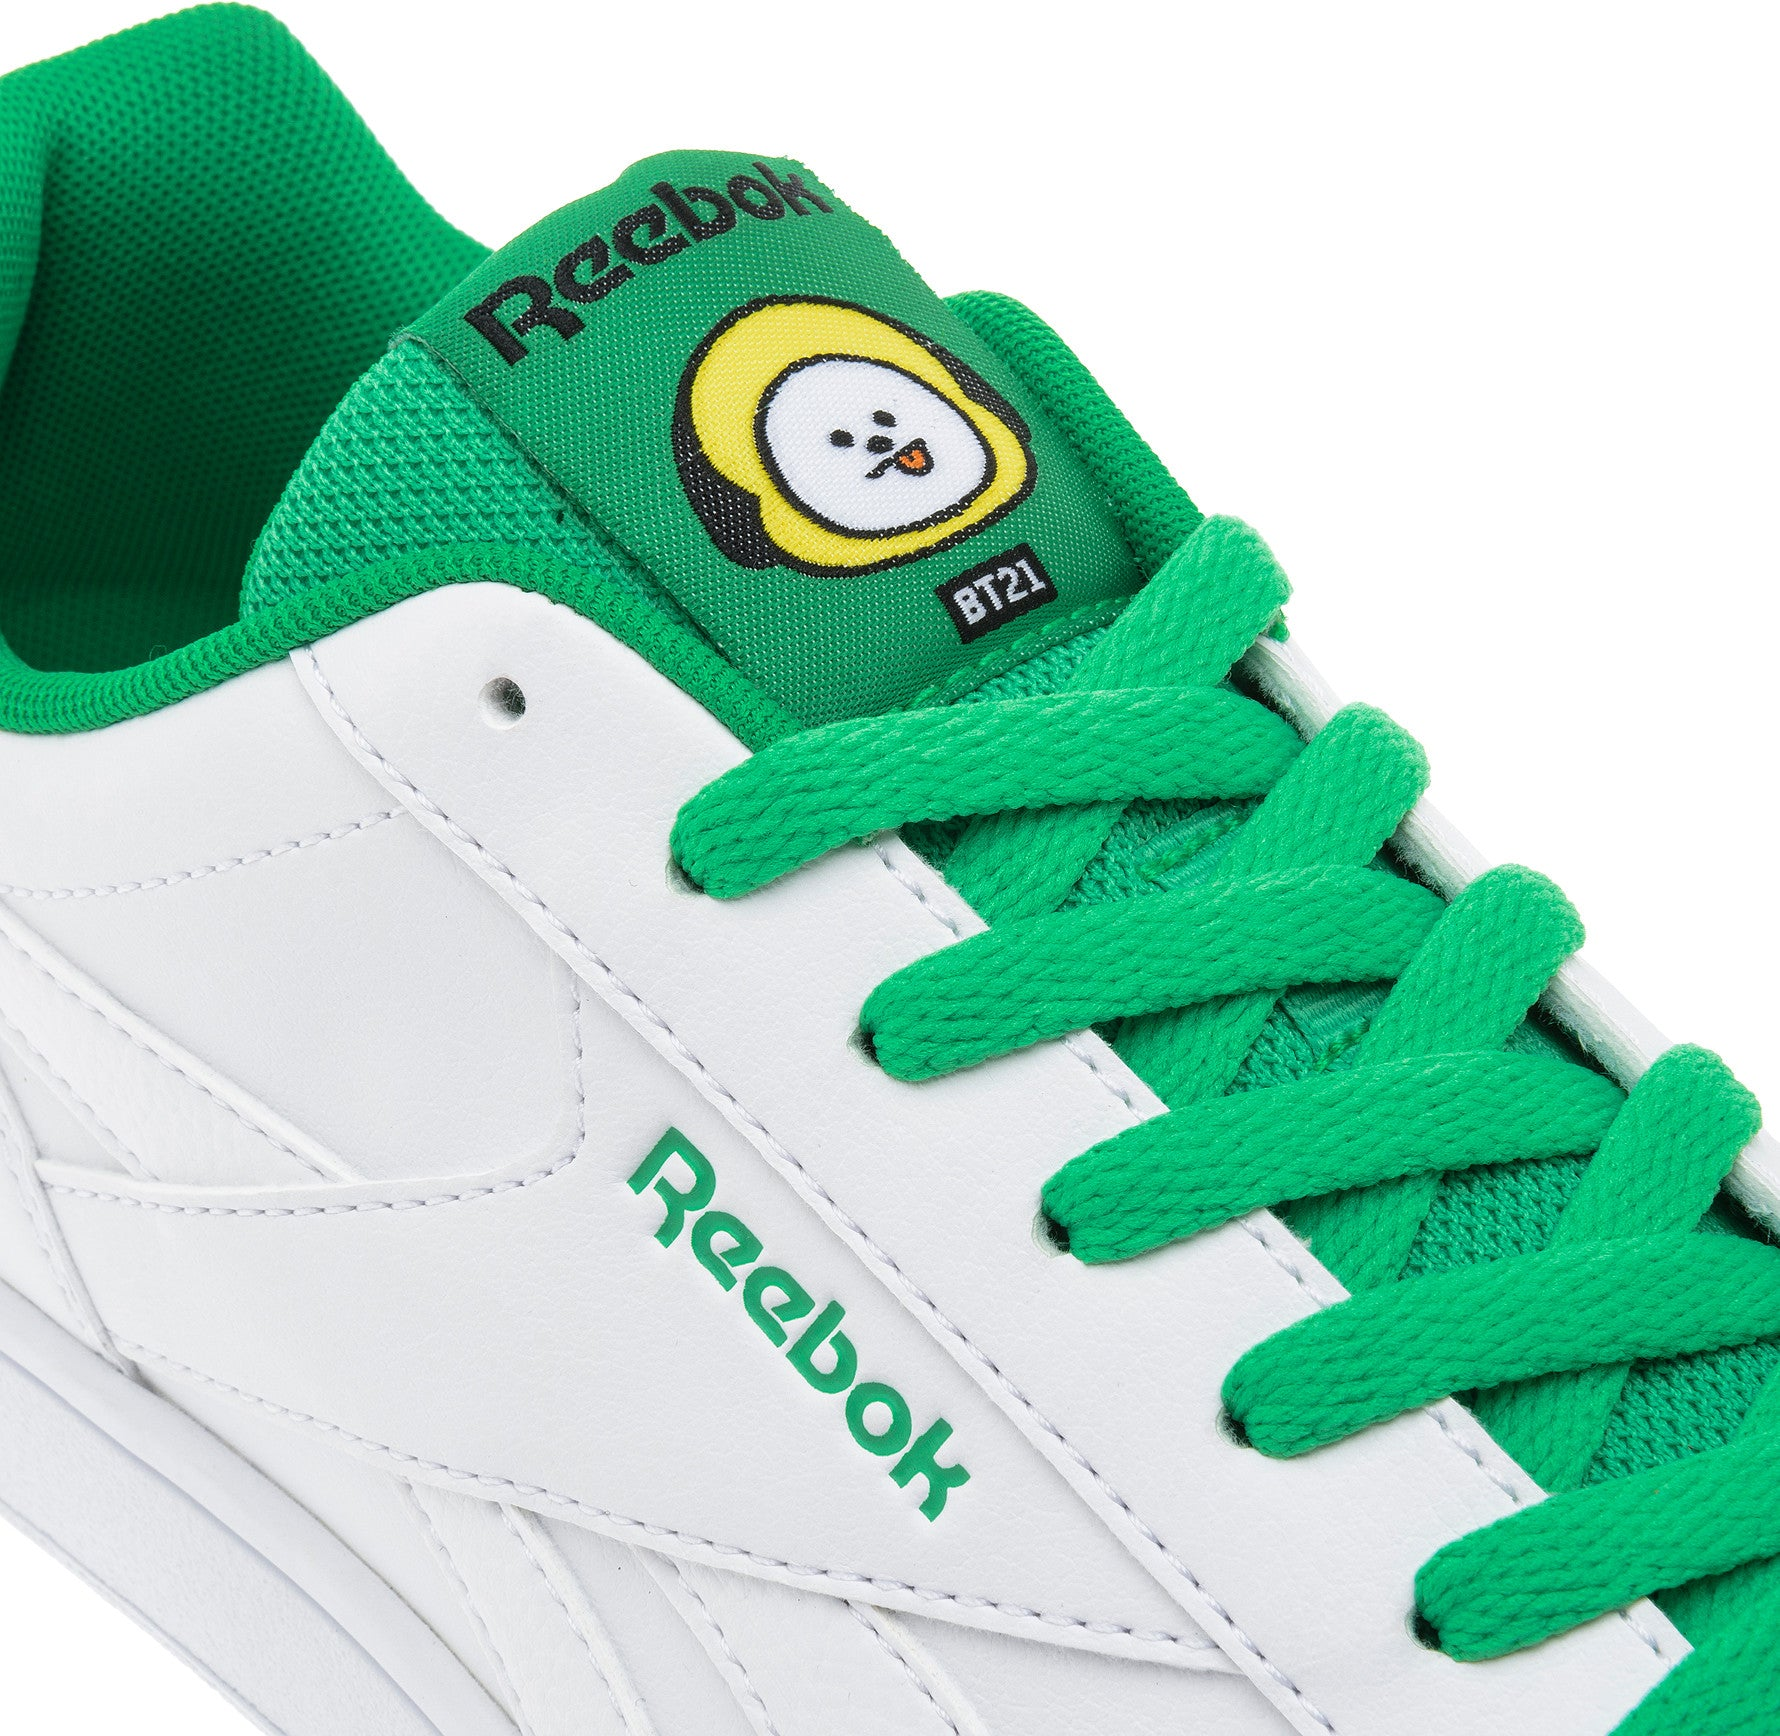 Reebok X BT21 - Complete 2 LCS - Chimmy